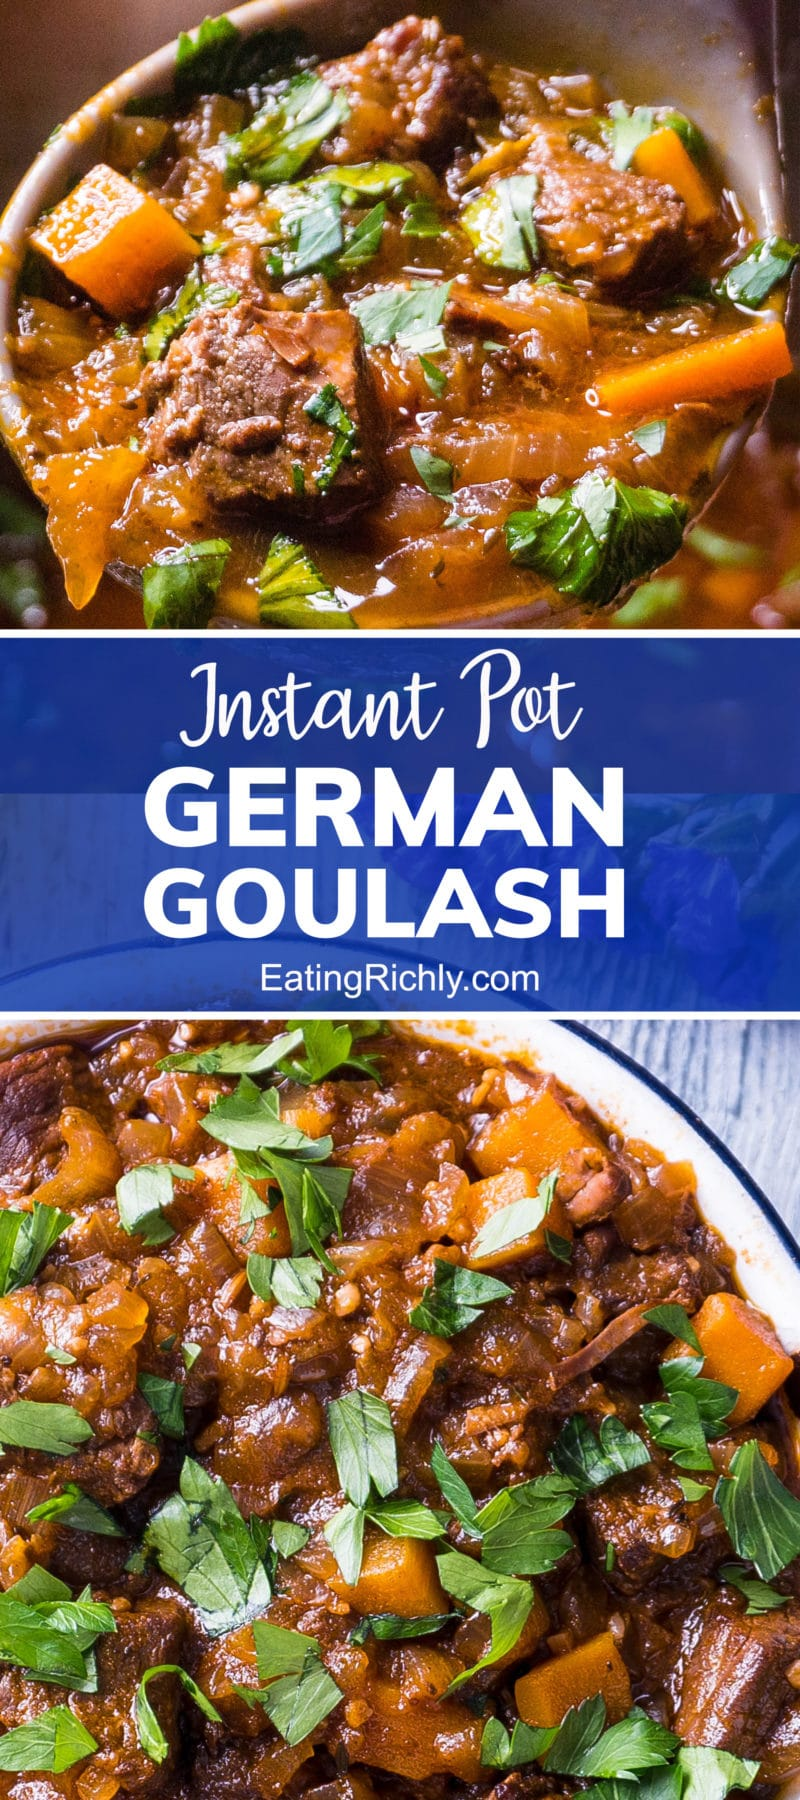 German goulash close up with text reading Instant Pot German goulash